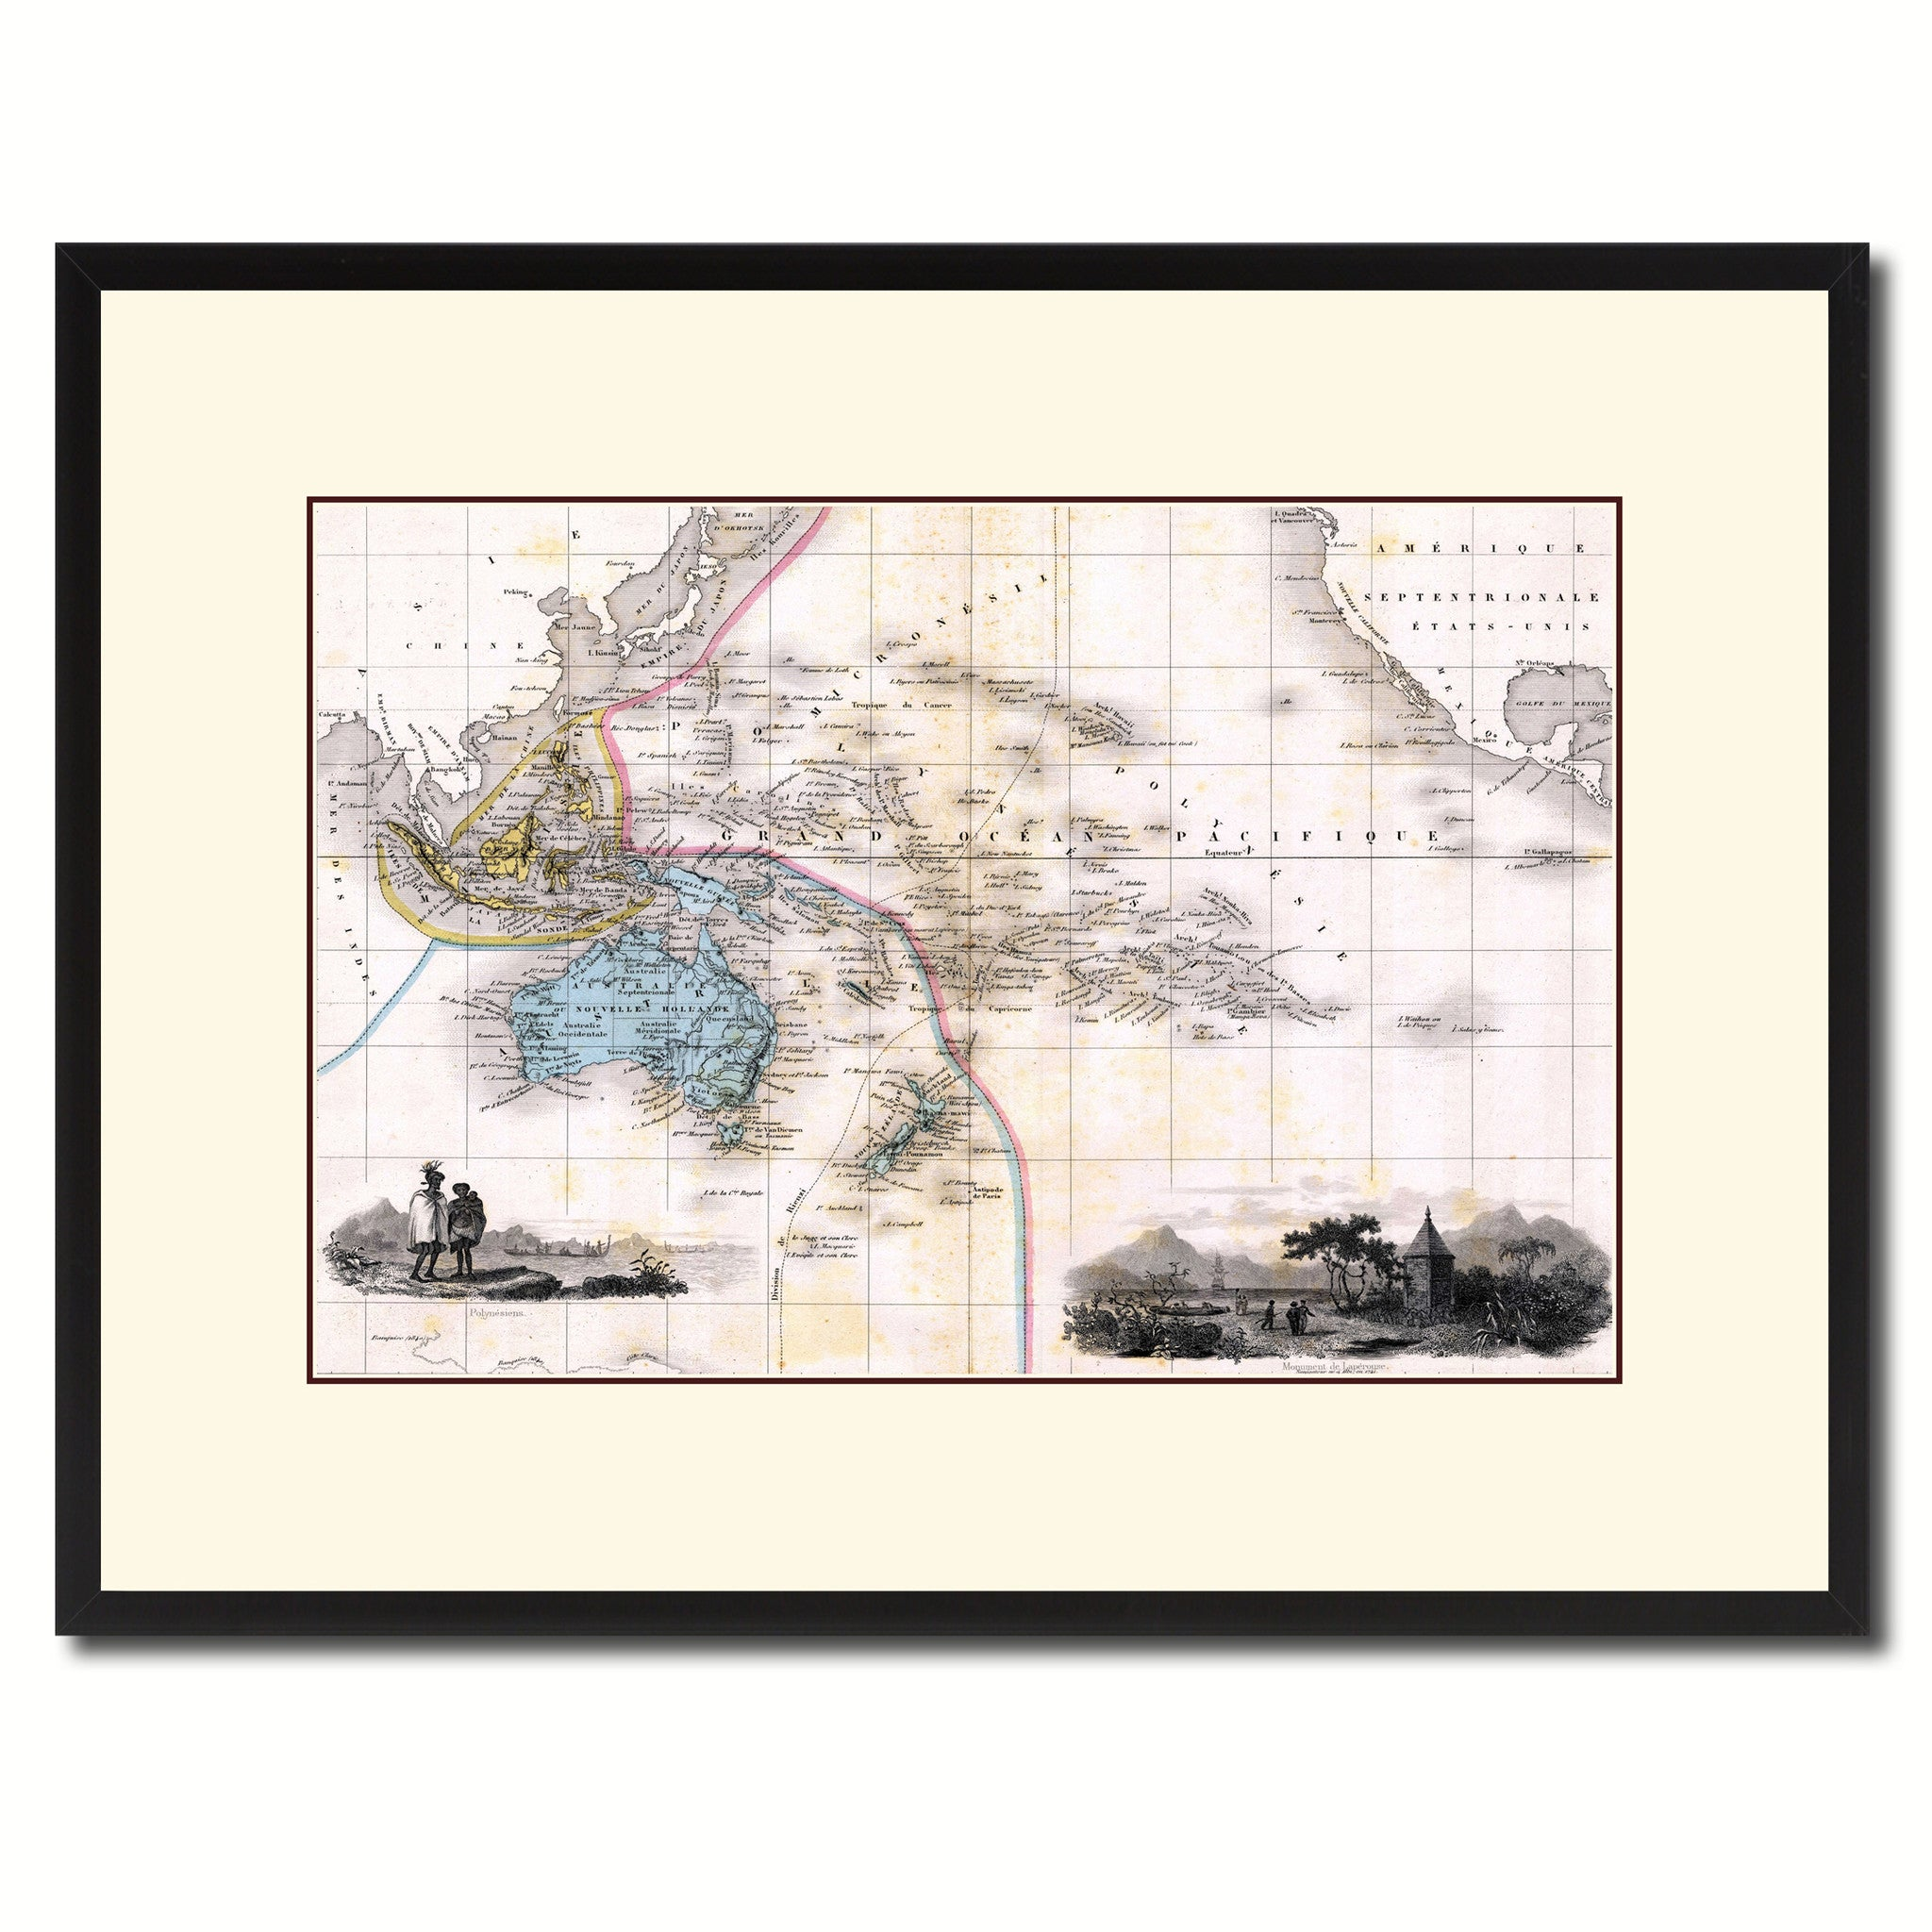 Oceania Australia New Zealand Vintage Antique Map Wall Art Home Decor Gift Ideas Canvas Print Custom Picture Frame